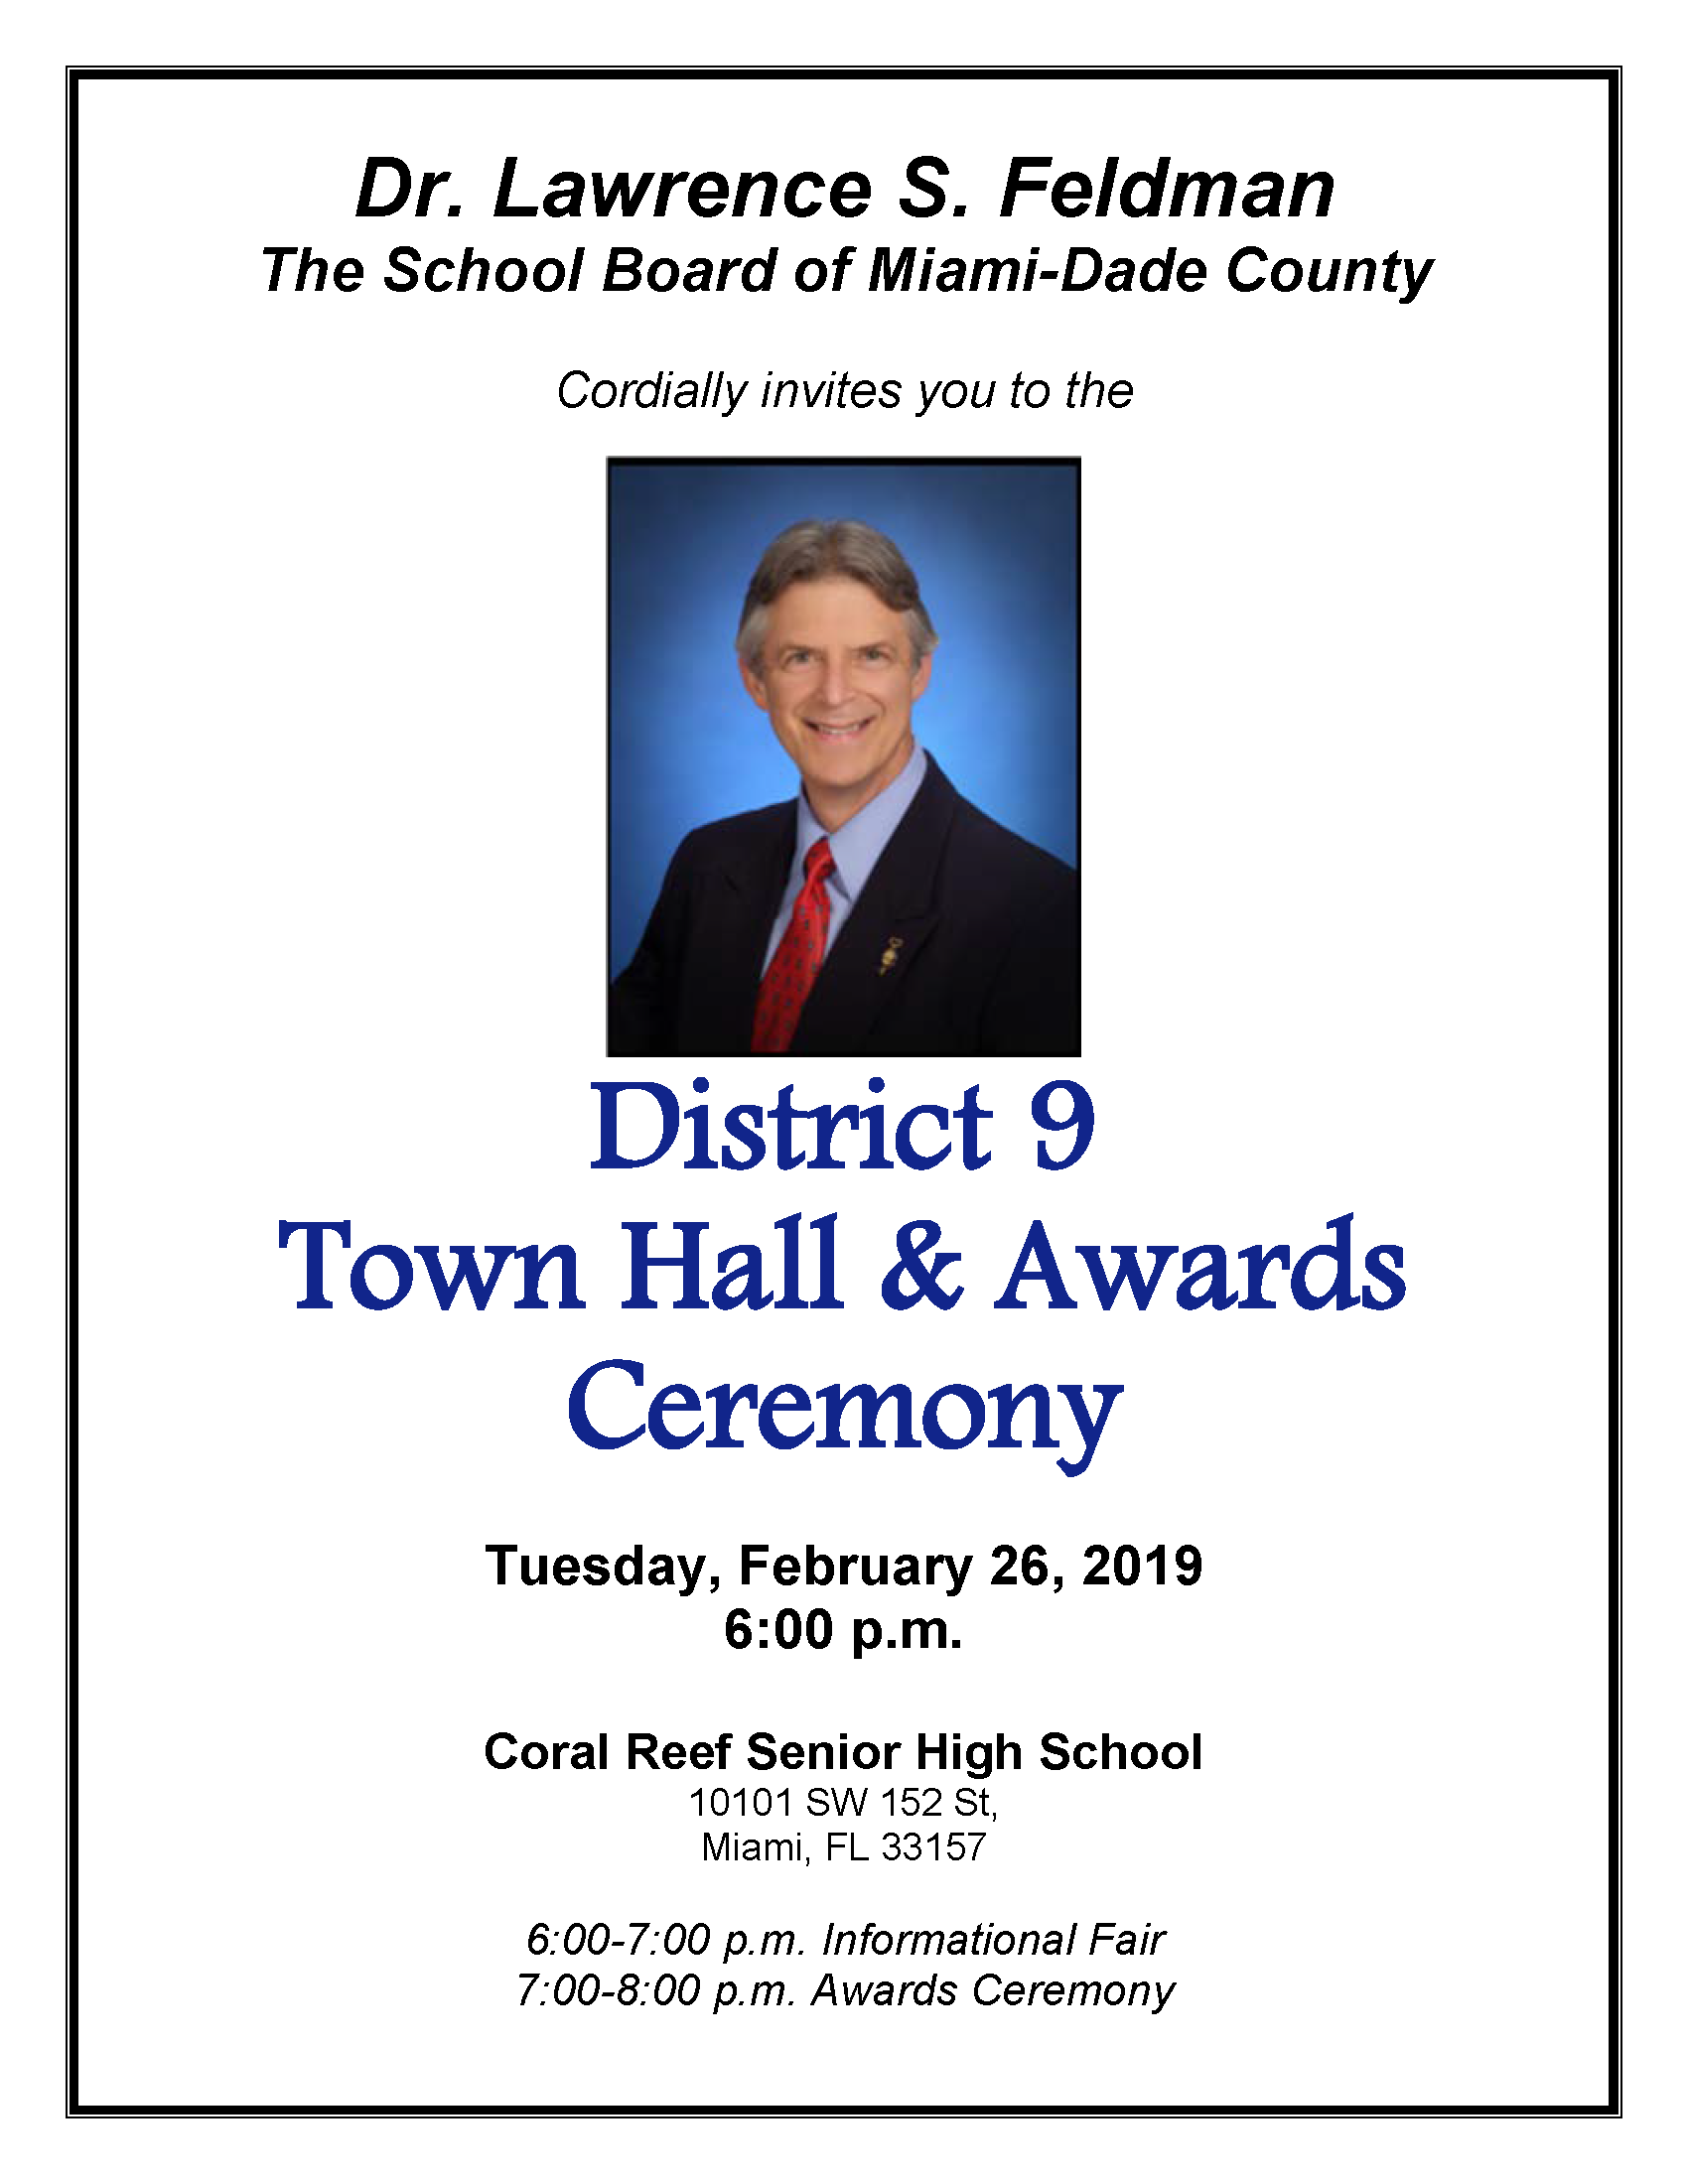 District 9 Town Hall & Awards Ceremony @ Coral Reef Senior High School